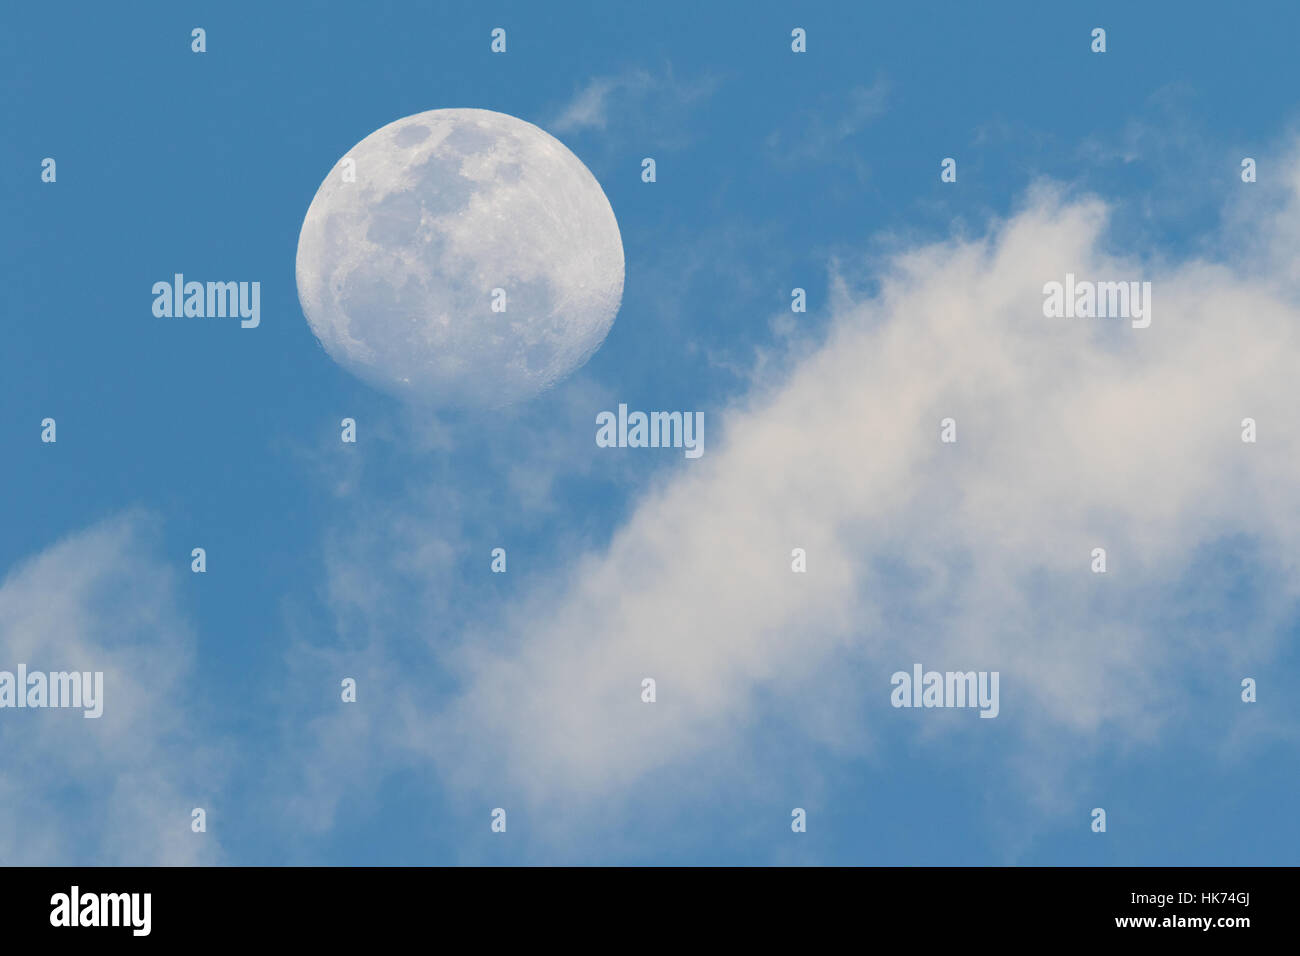 moon and clouds in daylight - Stock Image